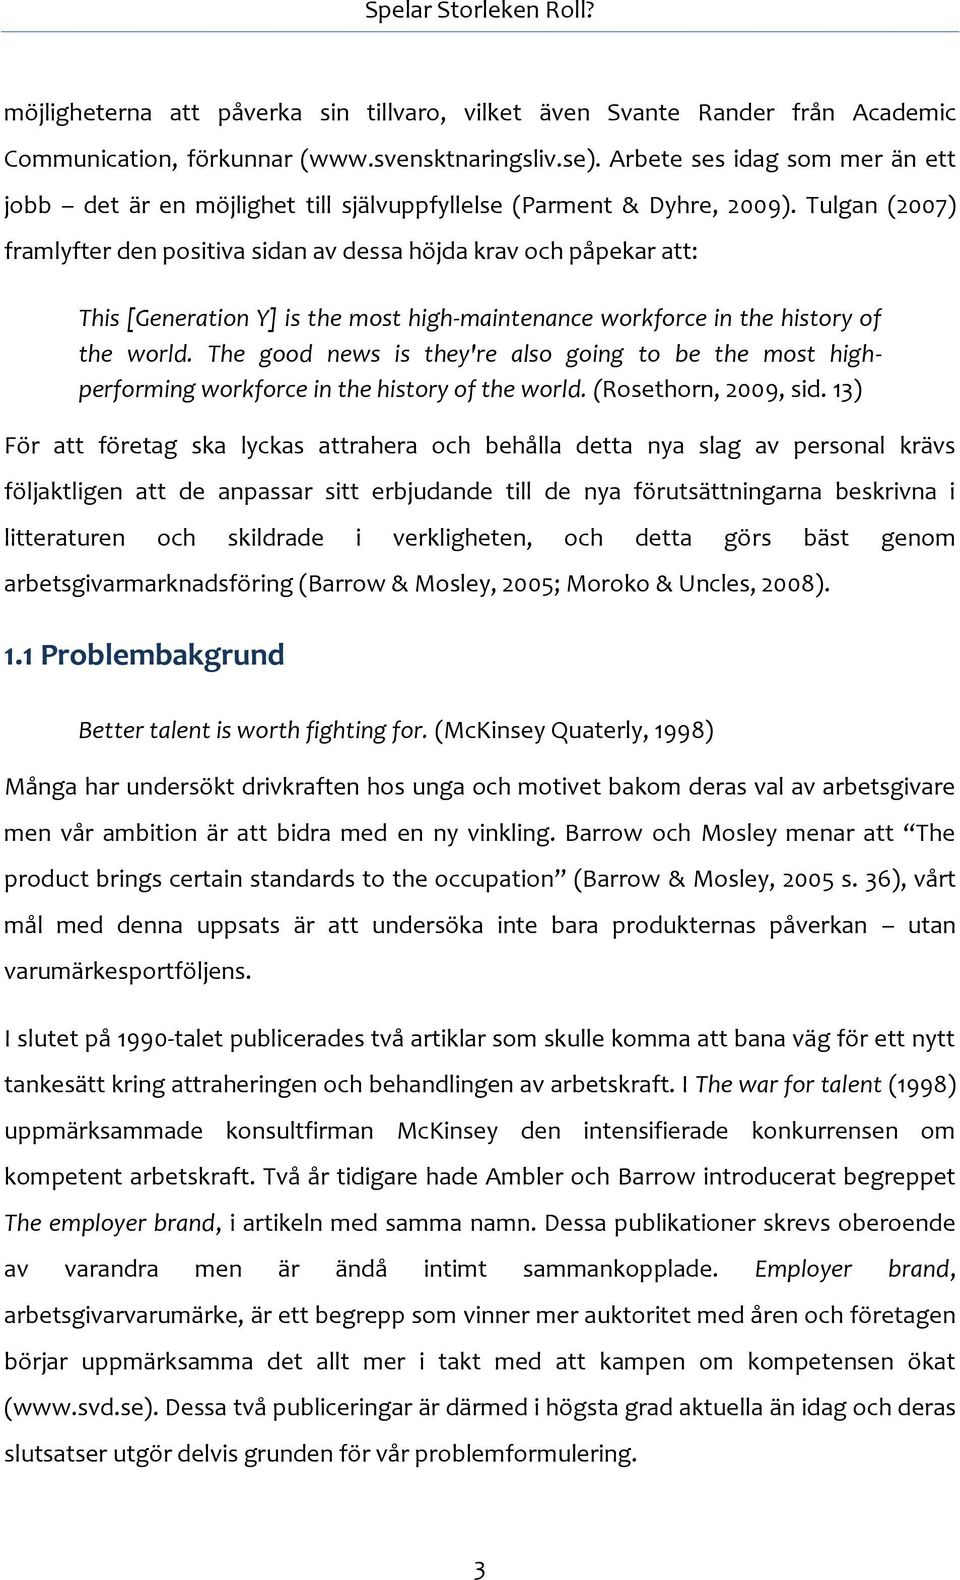 Tulgan (2007) framlyfter den positiva sidan av dessa höjda krav och påpekar att: This [Generation Y] is the most high-maintenance workforce in the history of the world.